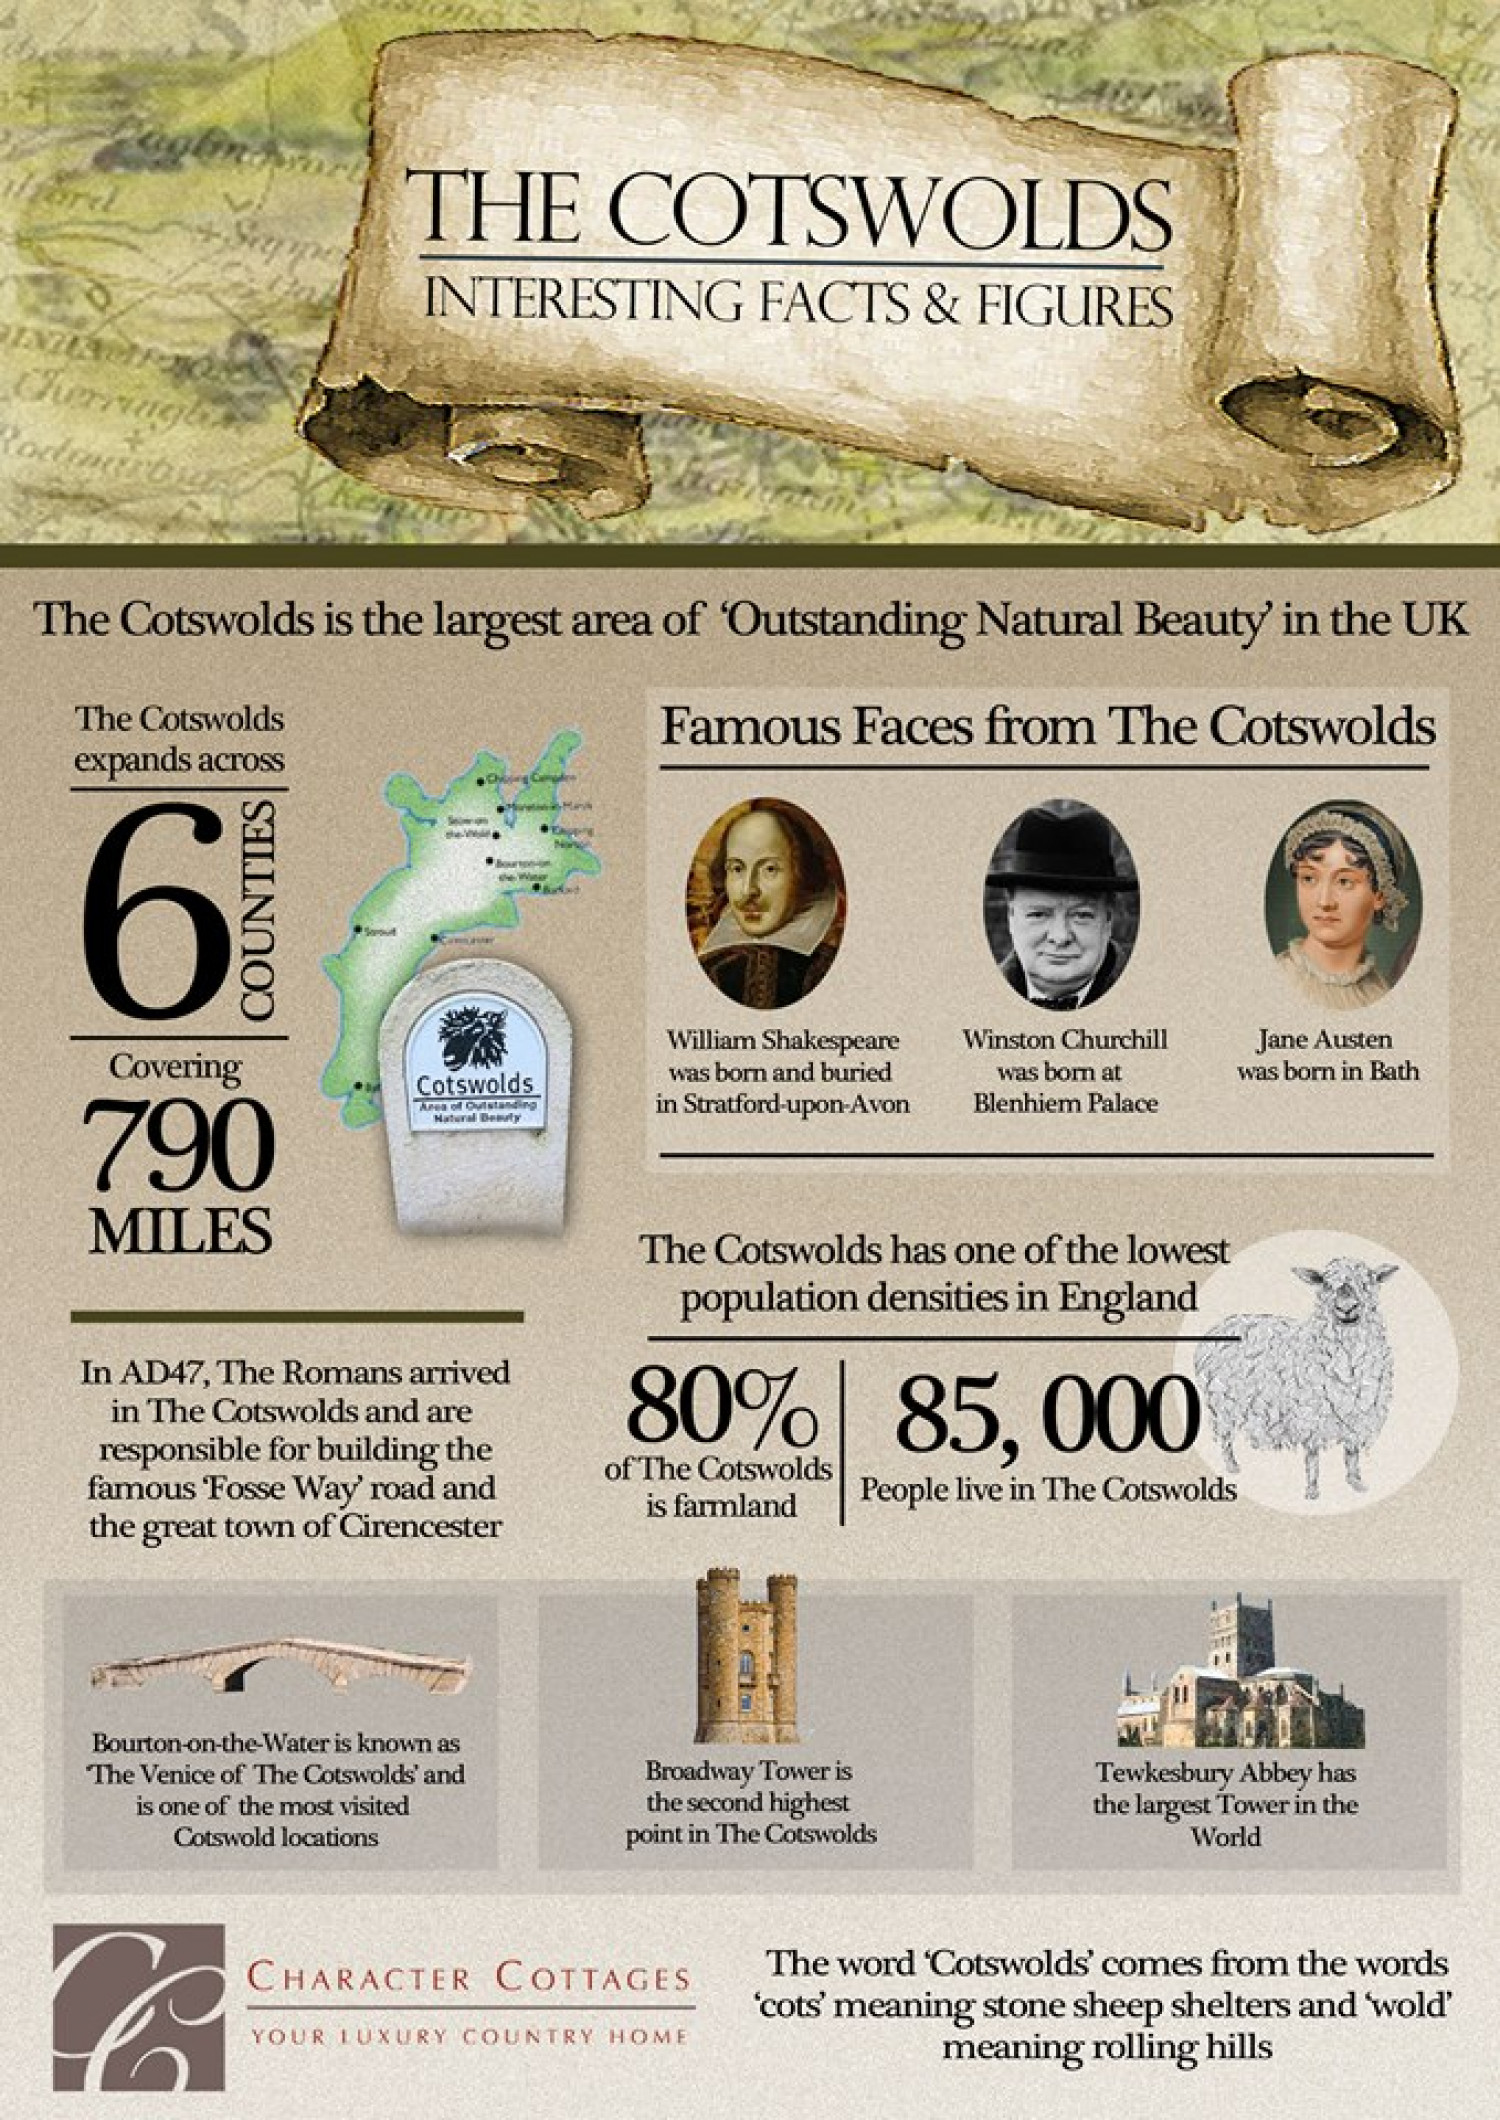 Facts about the Cotswolds Infographic